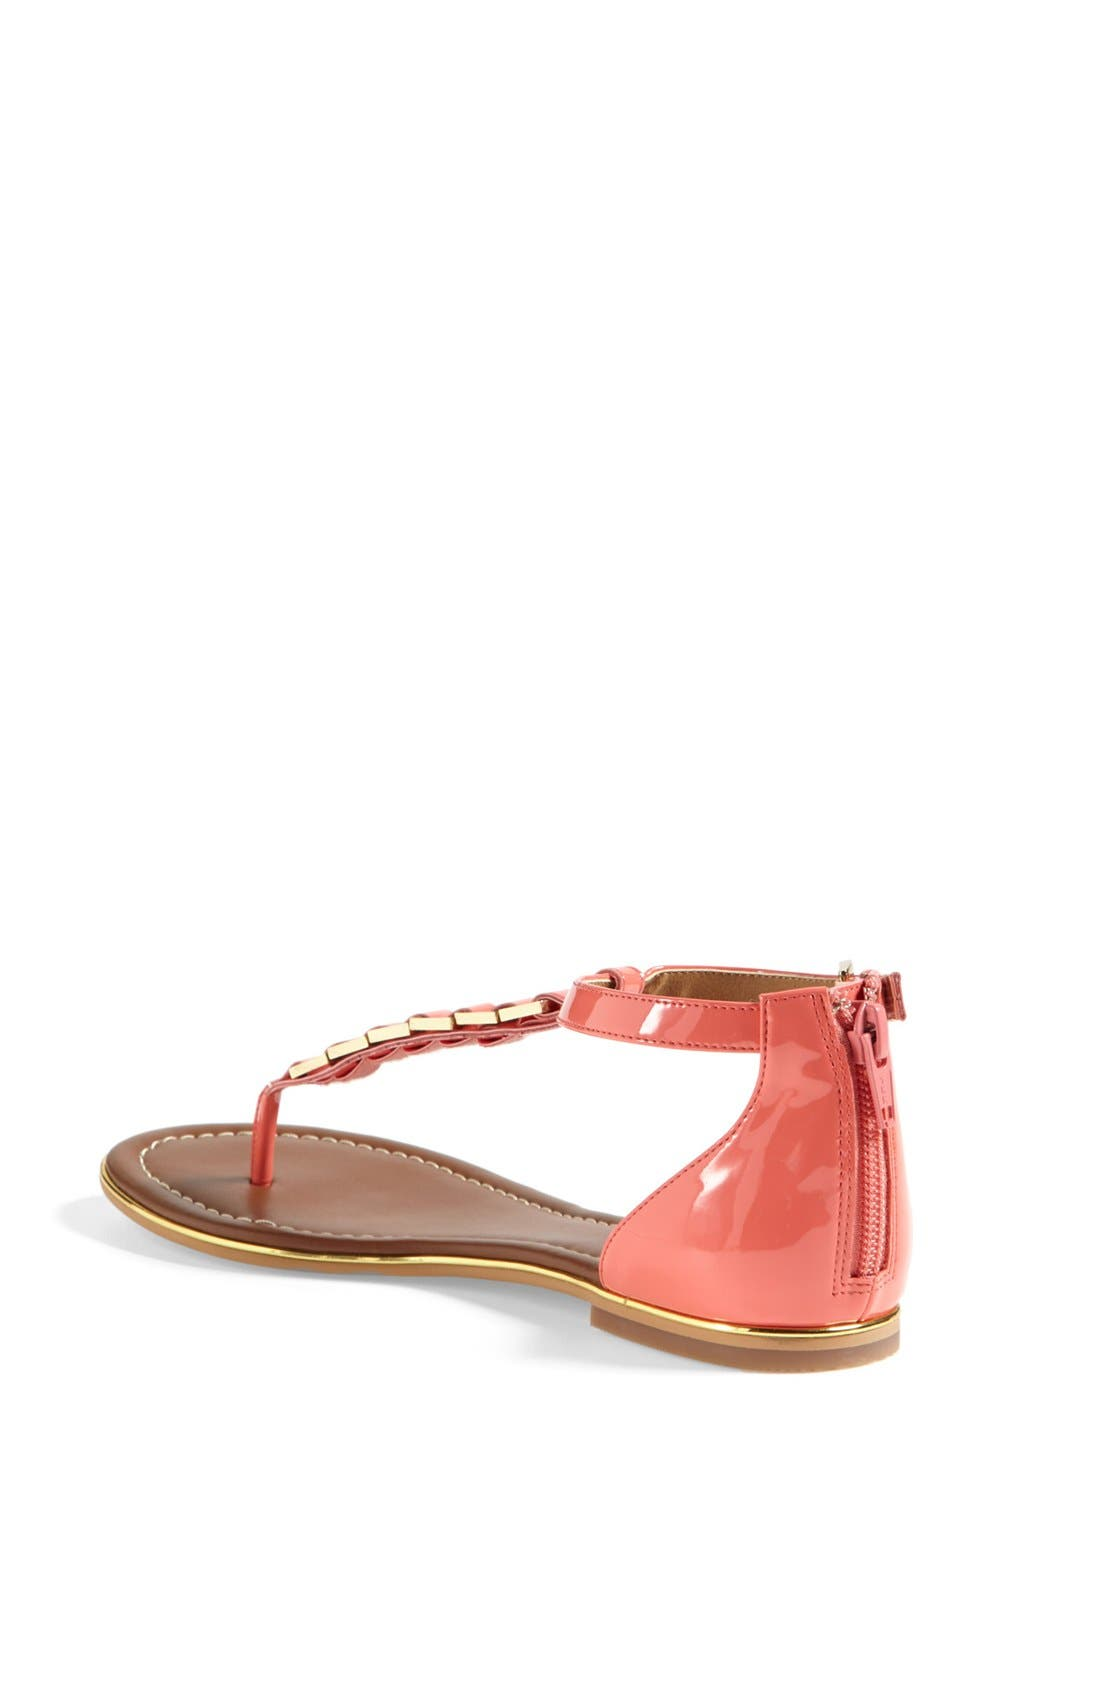 'Bonsai' Sandal,                             Alternate thumbnail 2, color,                             Coral Patent